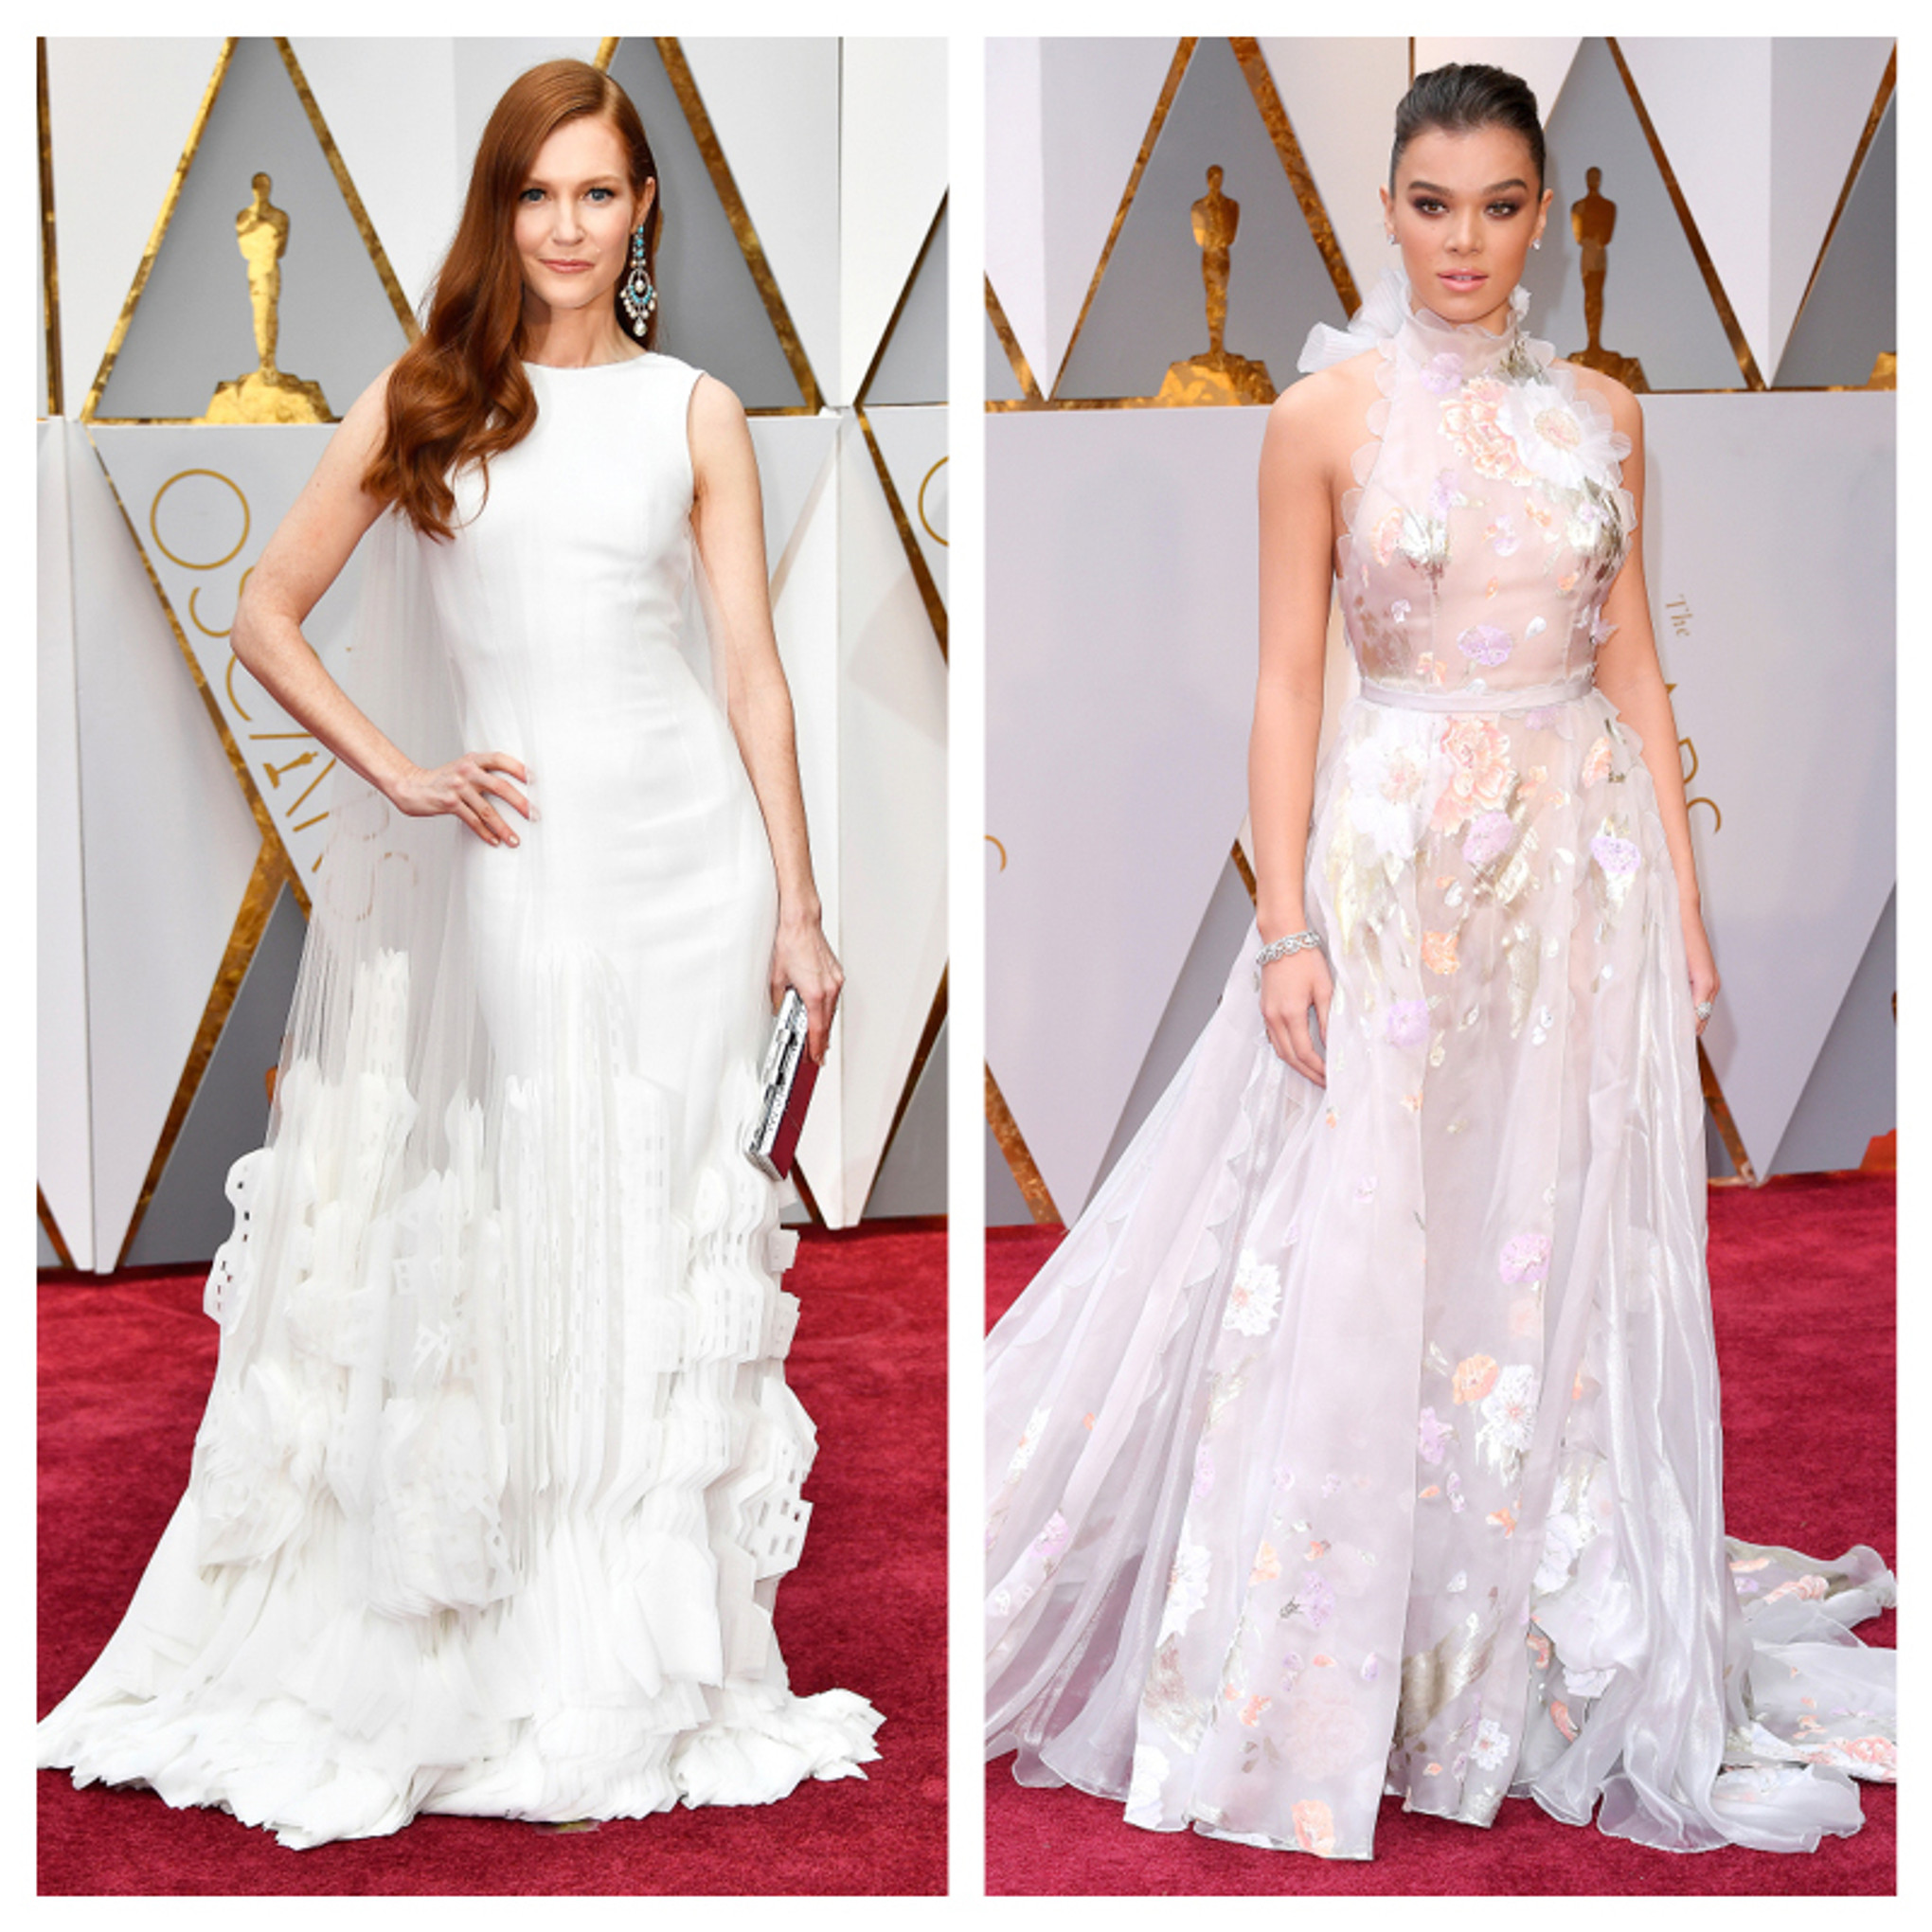 16 Stunning Wedding Ideas From The Oscars 2017 Red Carpet